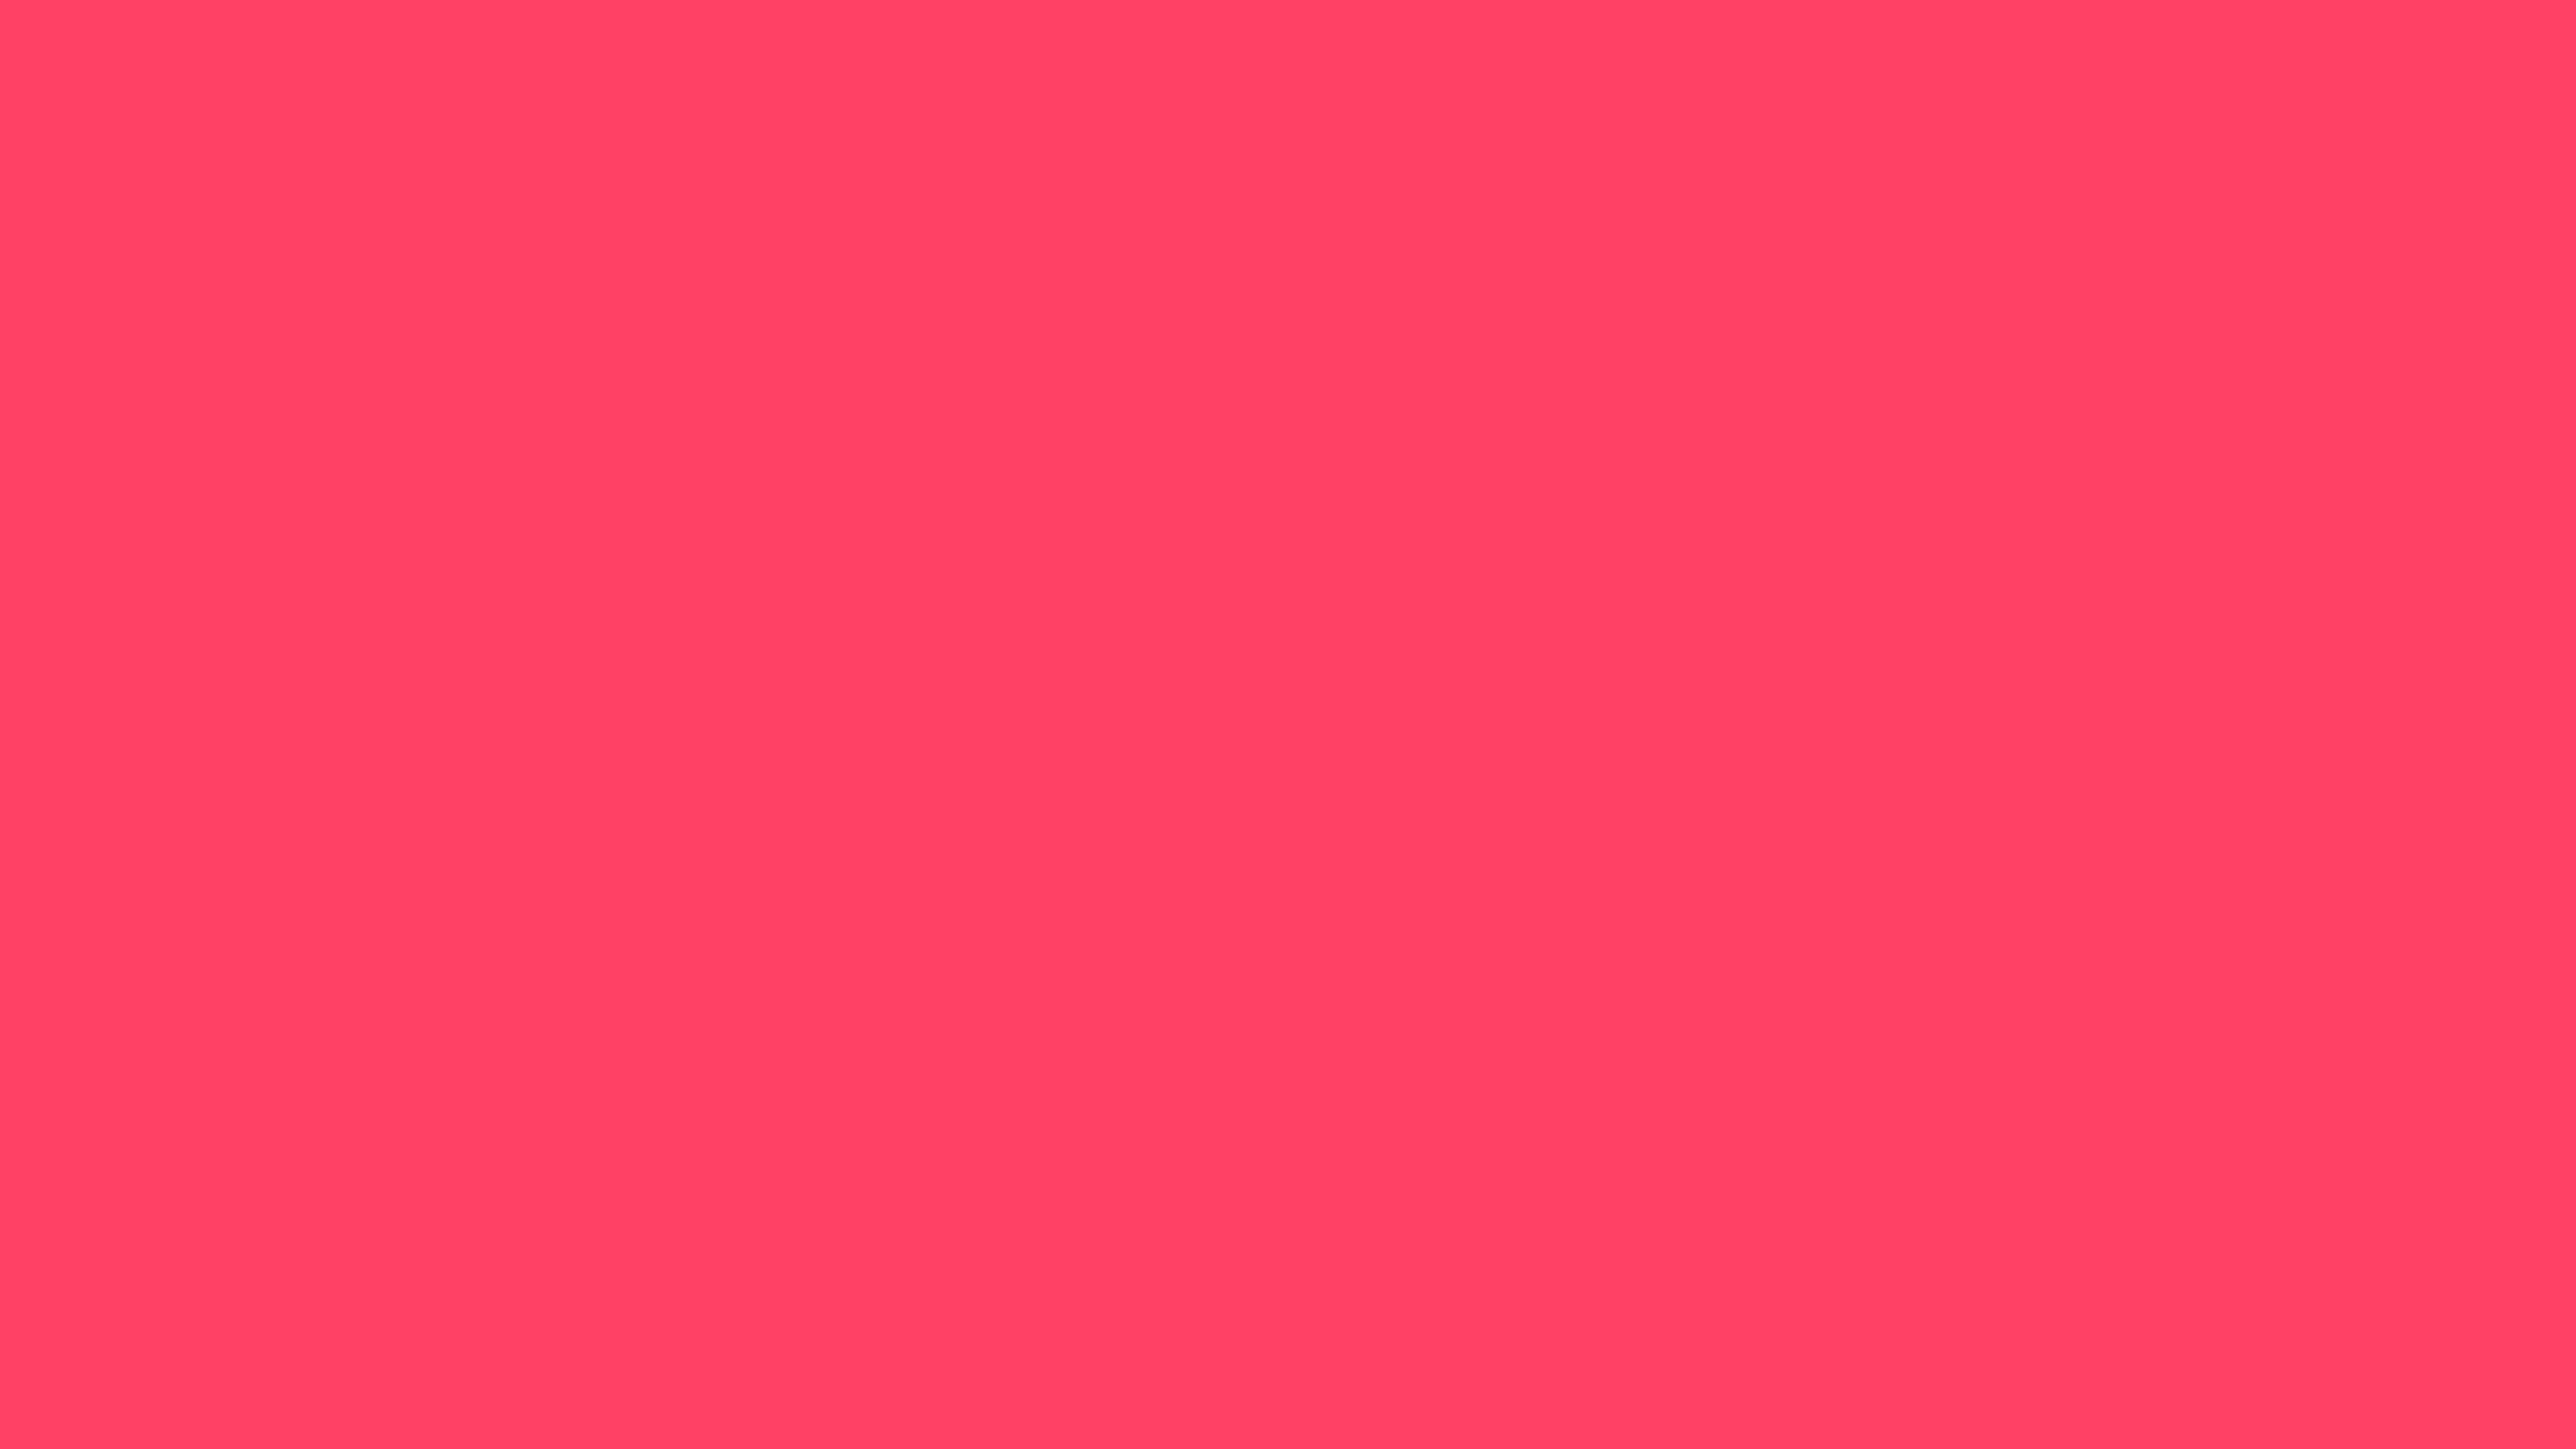 5120x2880 Neon Fuchsia Solid Color Background